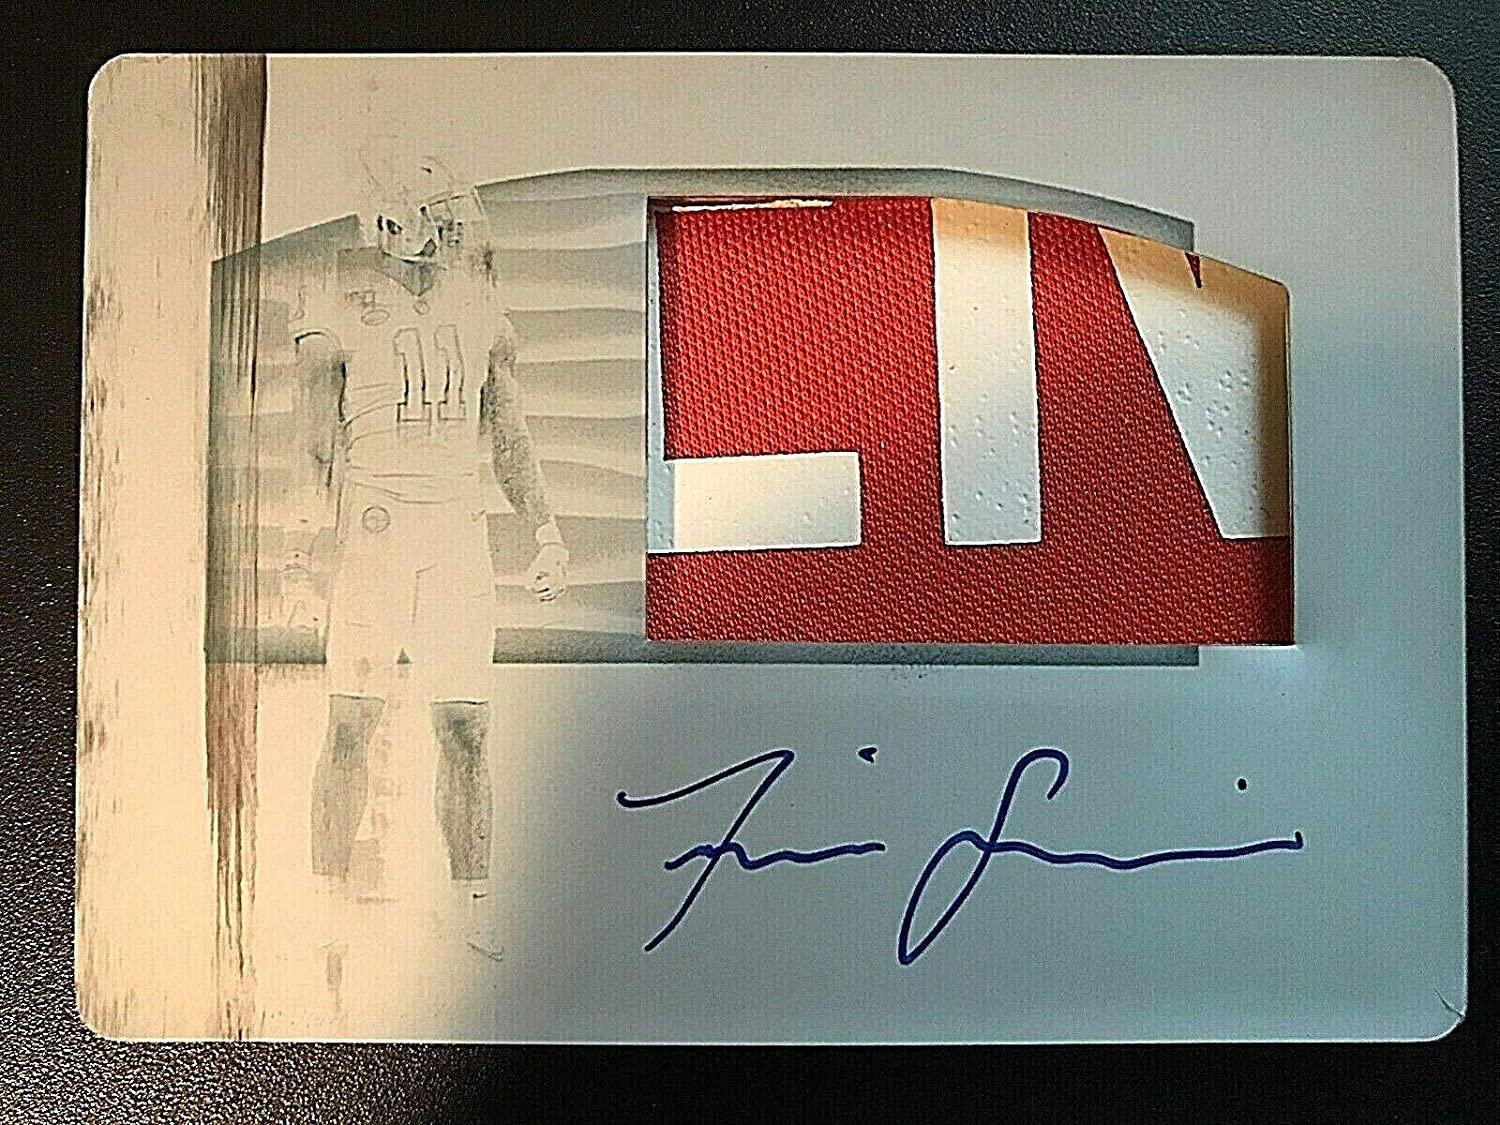 2020 National Treasures #126 Manufacturer direct delivery Isaiah Patch Simmons Printing cheap Plate